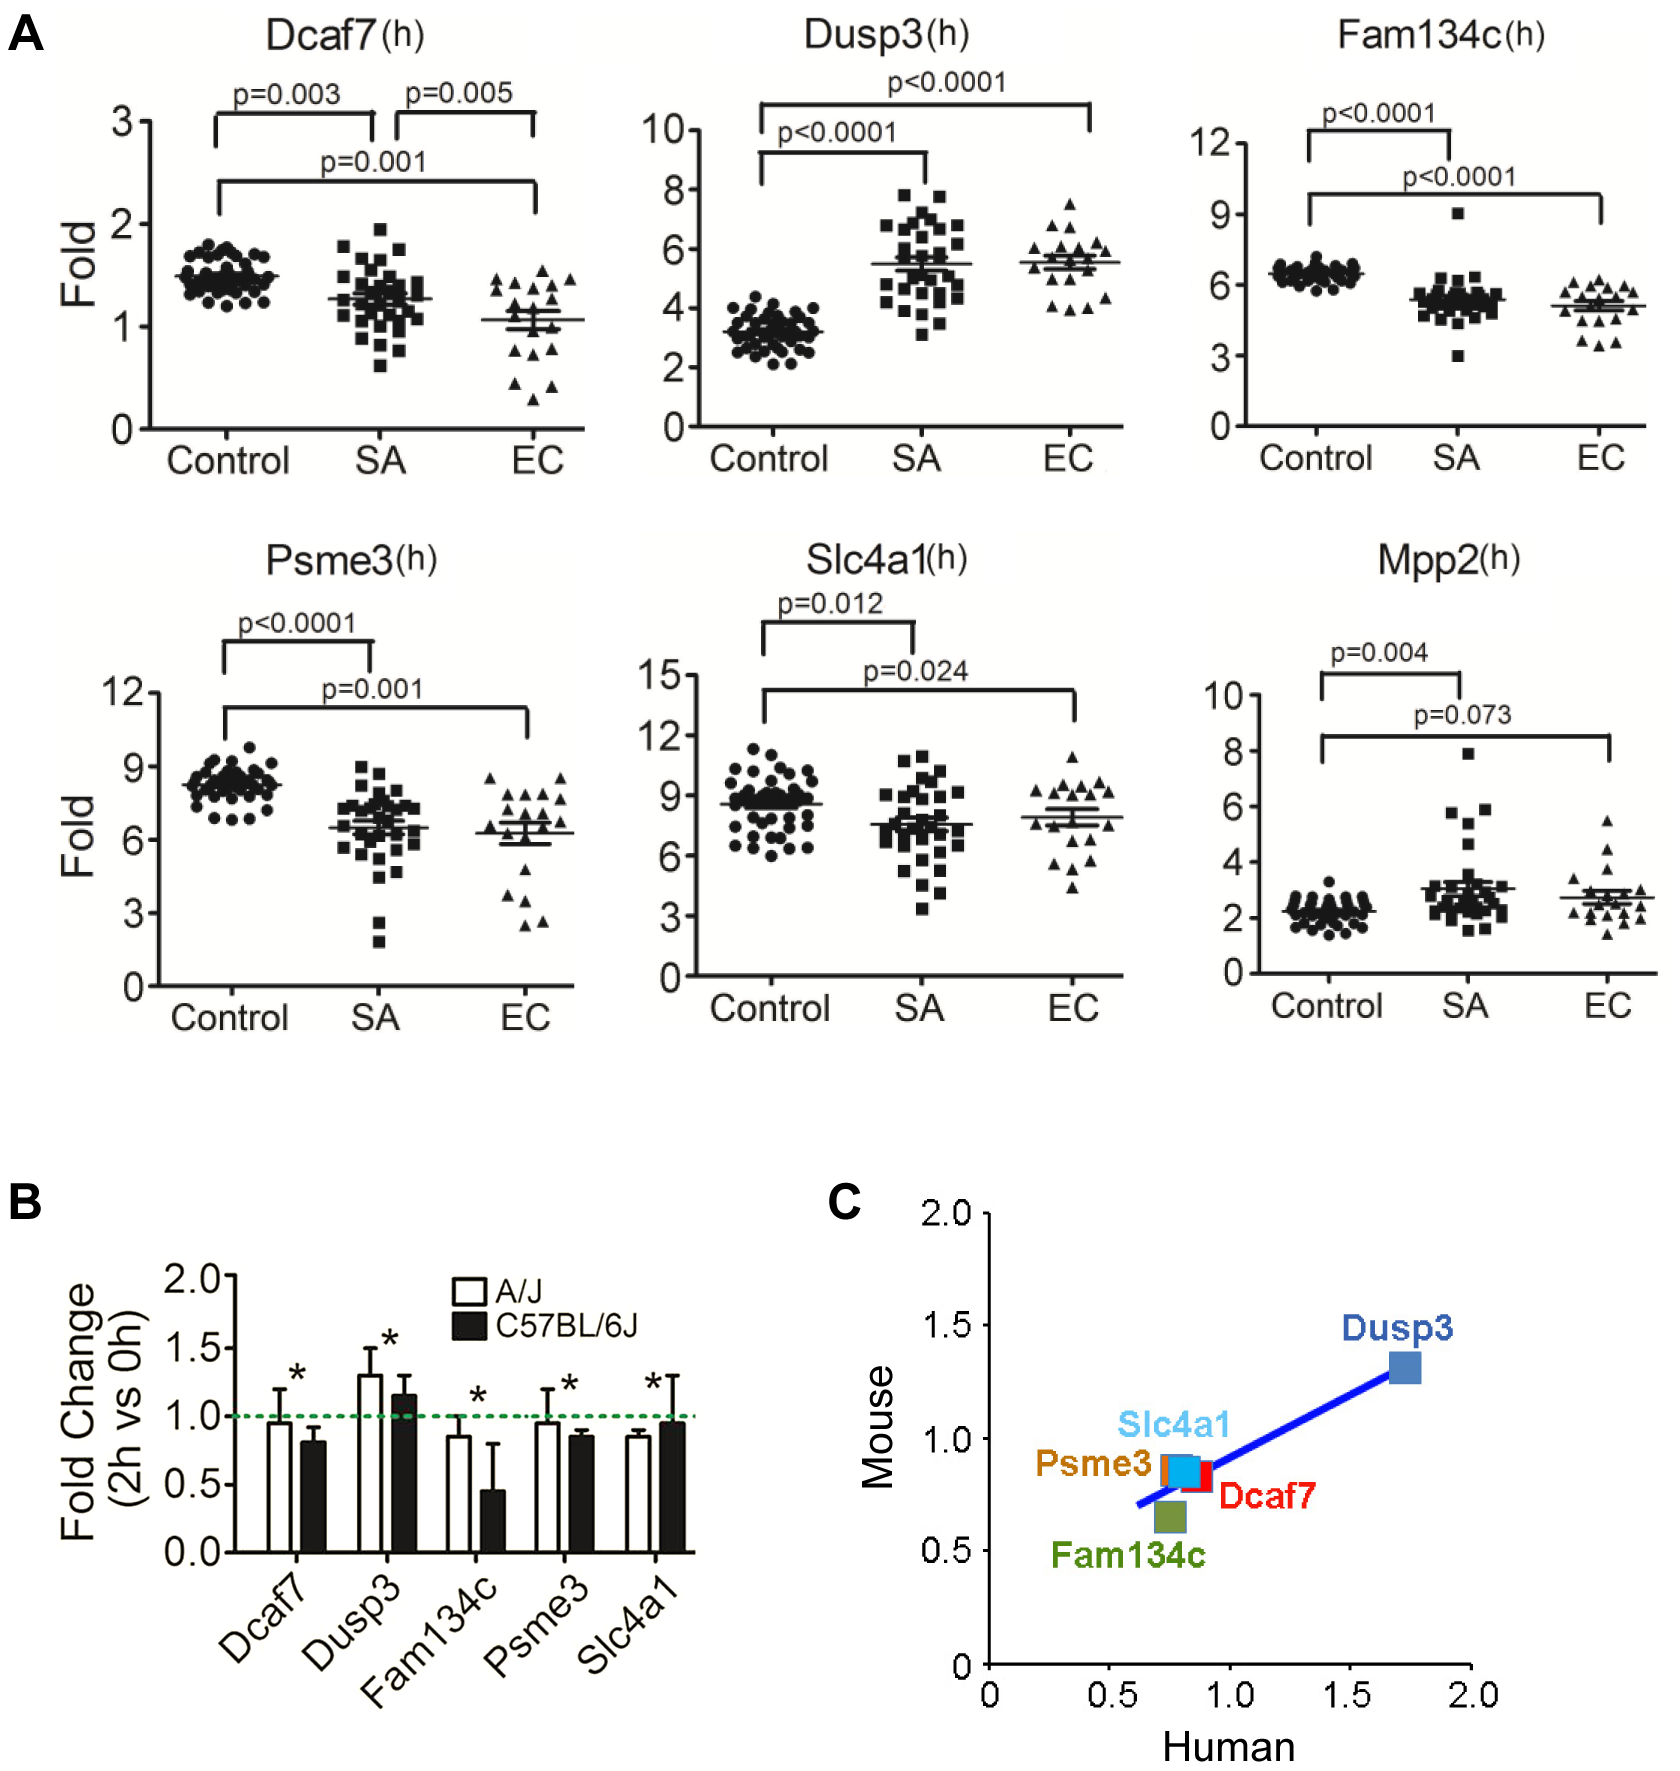 Human orthologues of six candidate genes were significantly differentially expressed between patients with <i>S. aureus</i> blood stream infection (BSI) and healthy subjects, and five of these genes (<i>Dcaf7</i>, <i>Dusp3</i>, <i>Fam134c</i>, <i>Psme3</i>, and <i>Slc4a1</i>) demonstrated consistent uninfected vs infected expression patterns between mouse and human.